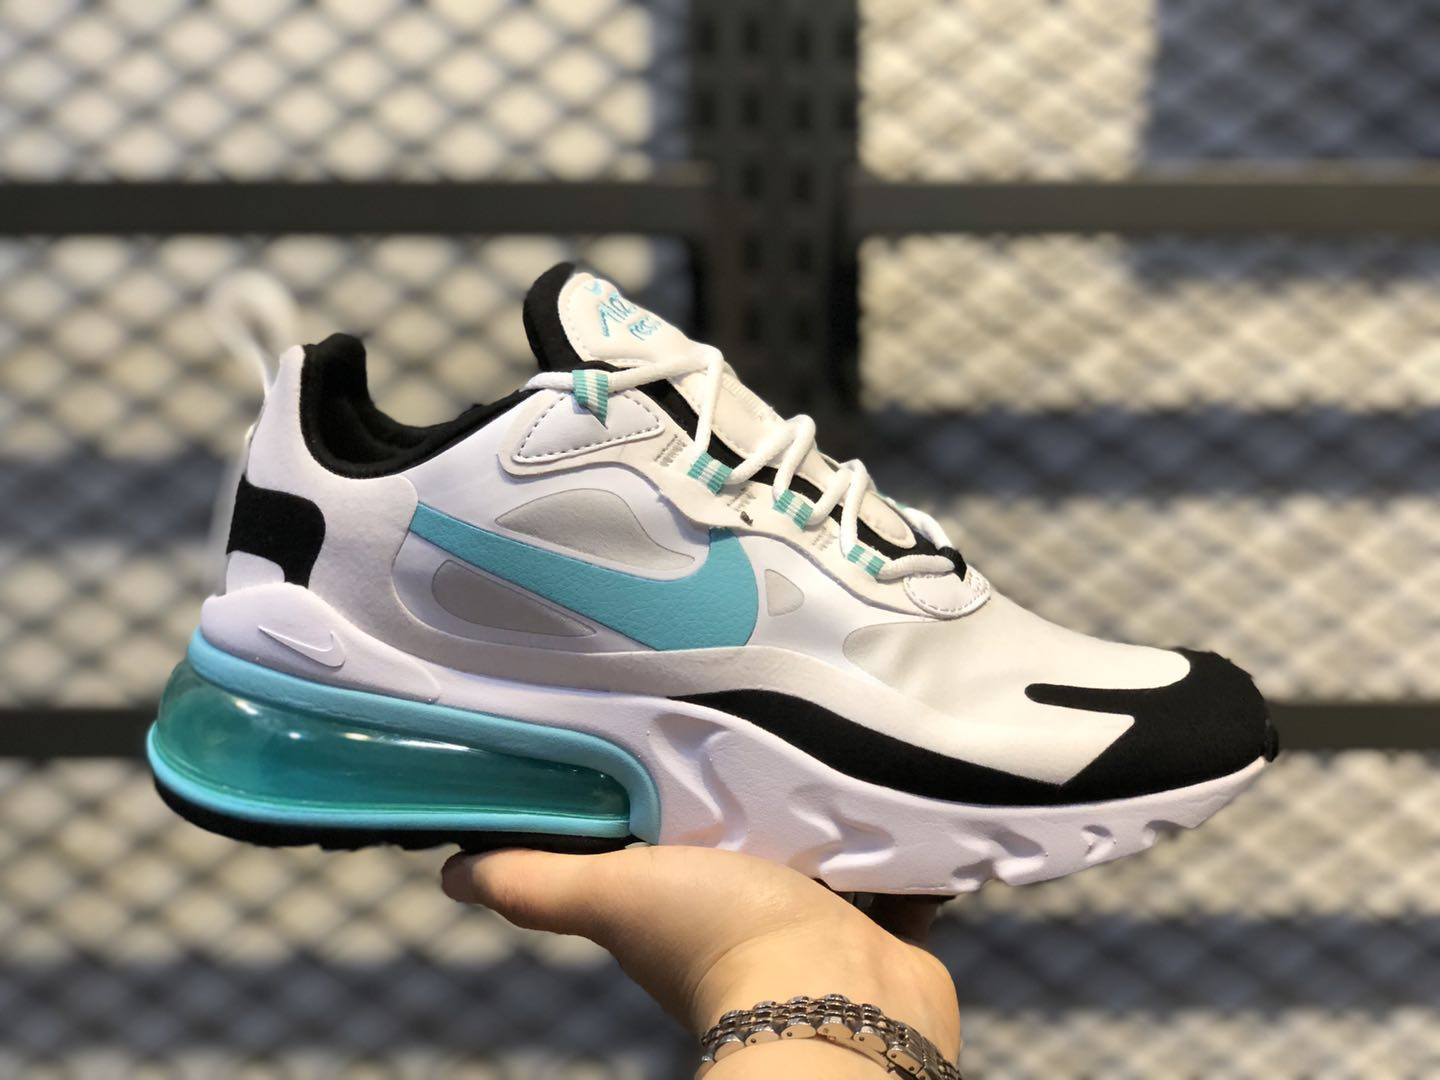 Nike Air Max 270 React Photon Dust/Aurora Green-White-Black CJ0619-001